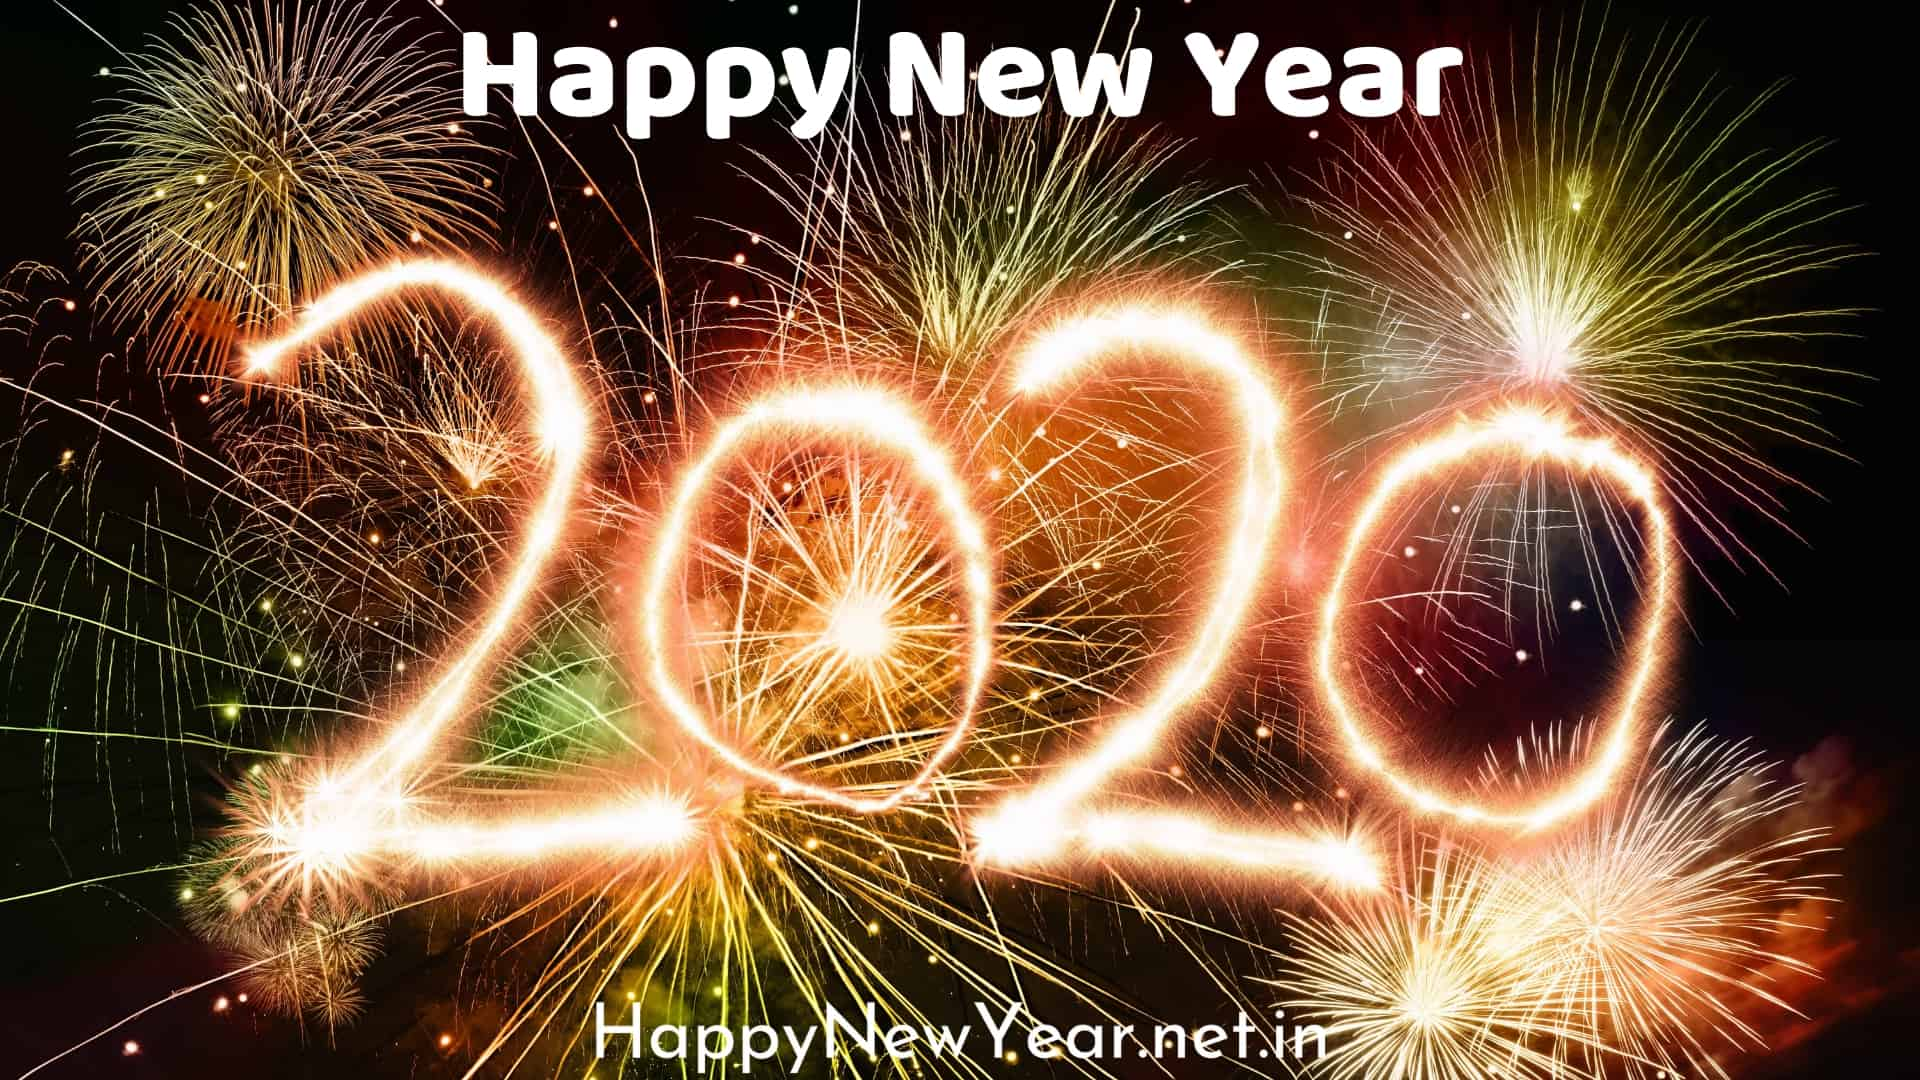 Happy new year wishes for friends 2020 wallpaper 1920x1080 1920x1080